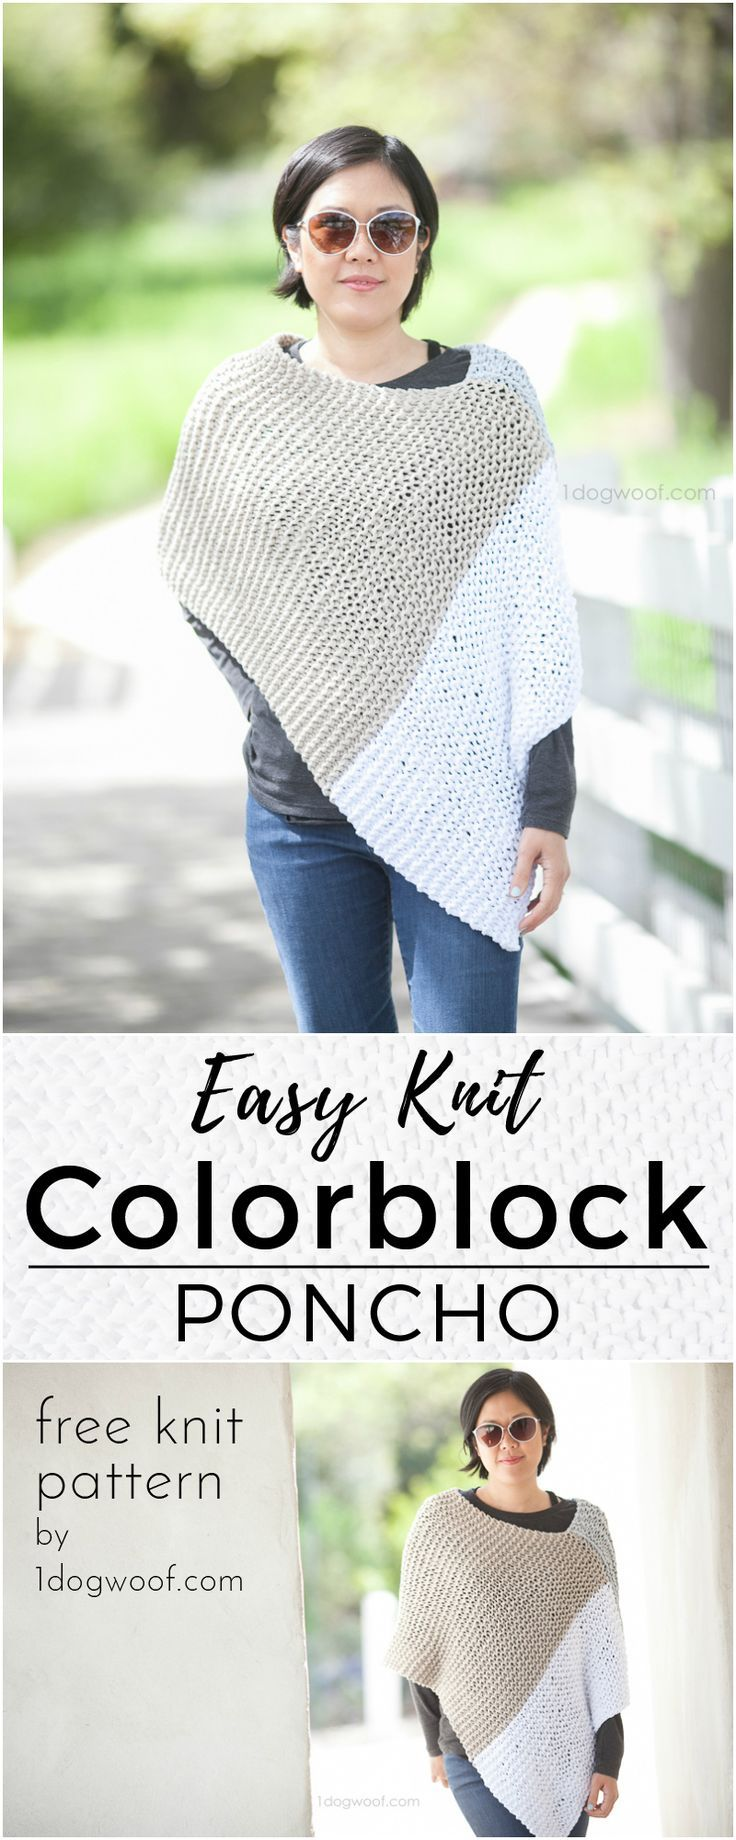 Easy Knit Catalunya Colorblock Poncho | Ponchos, Tejer con dos ...